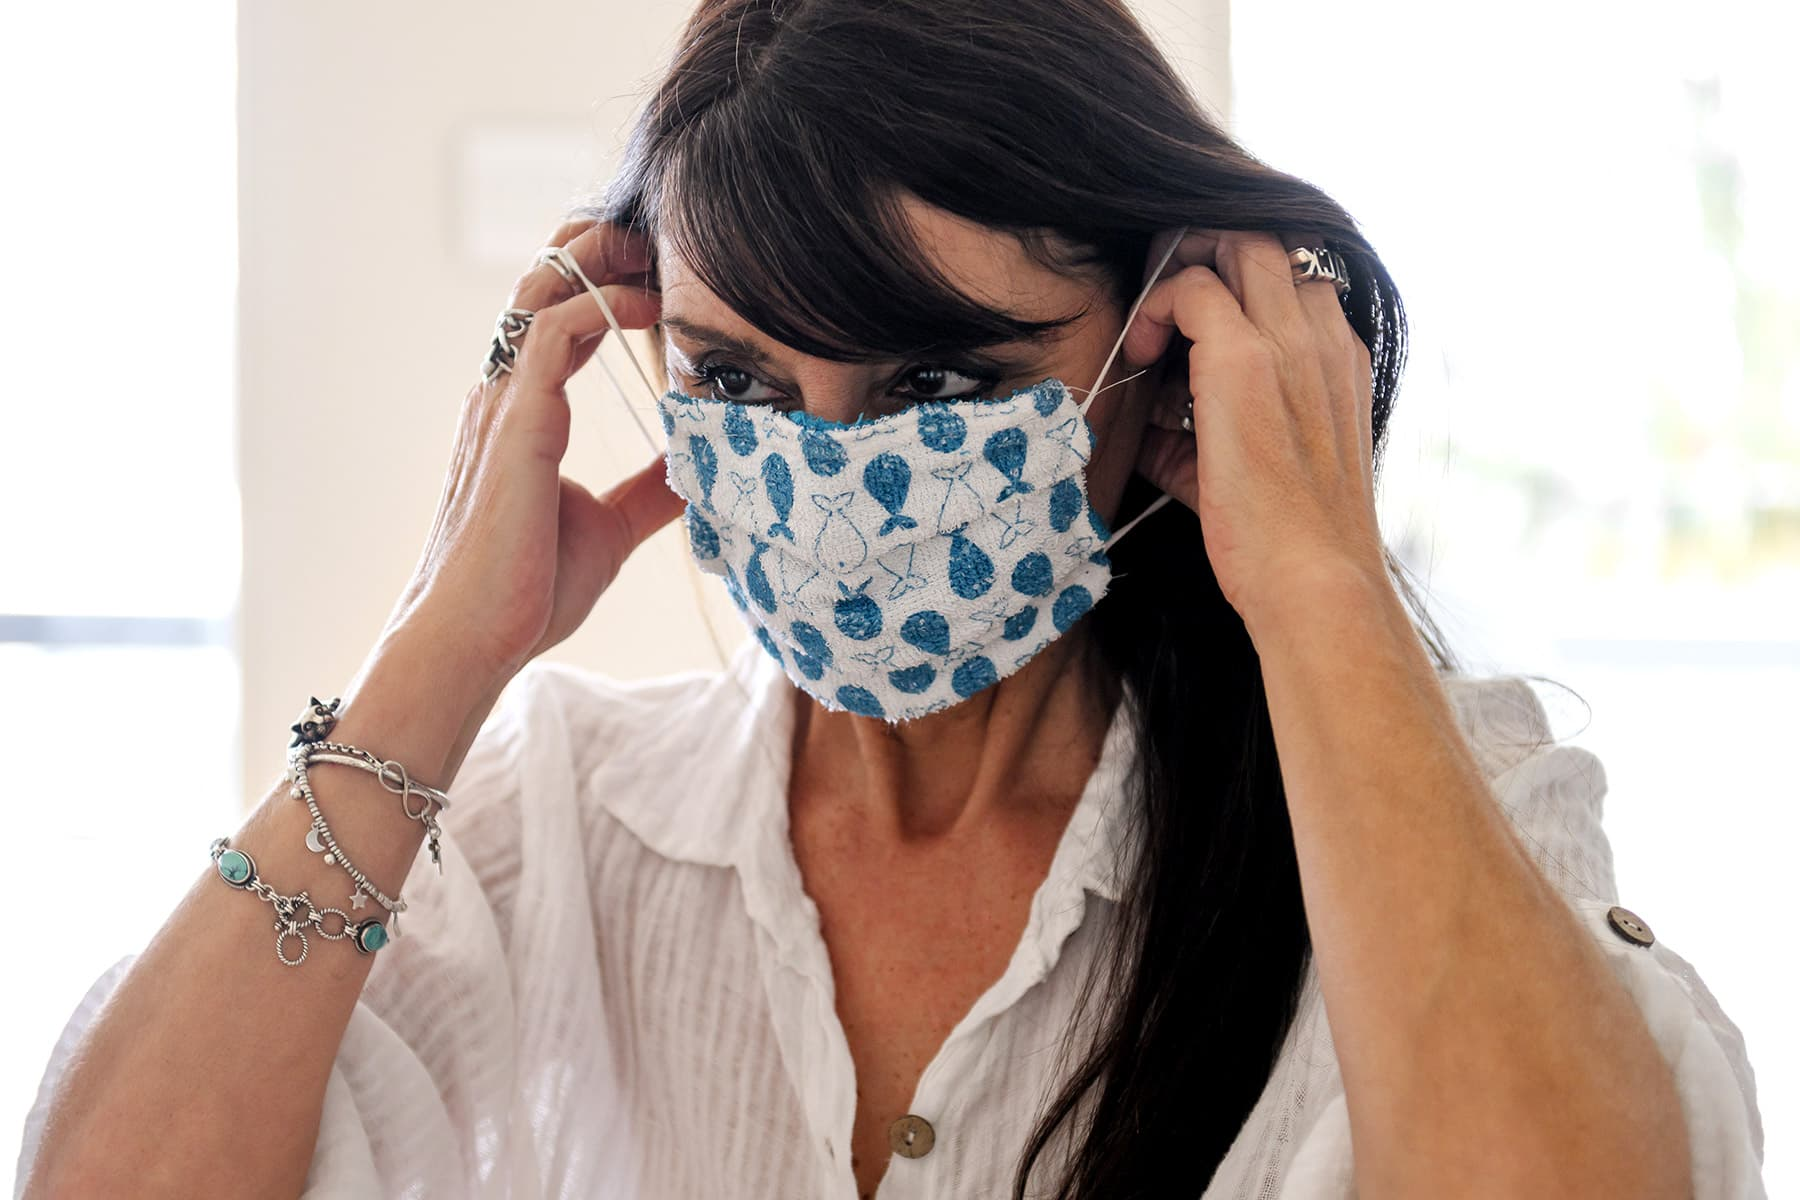 photo of woman wearing homemade mask